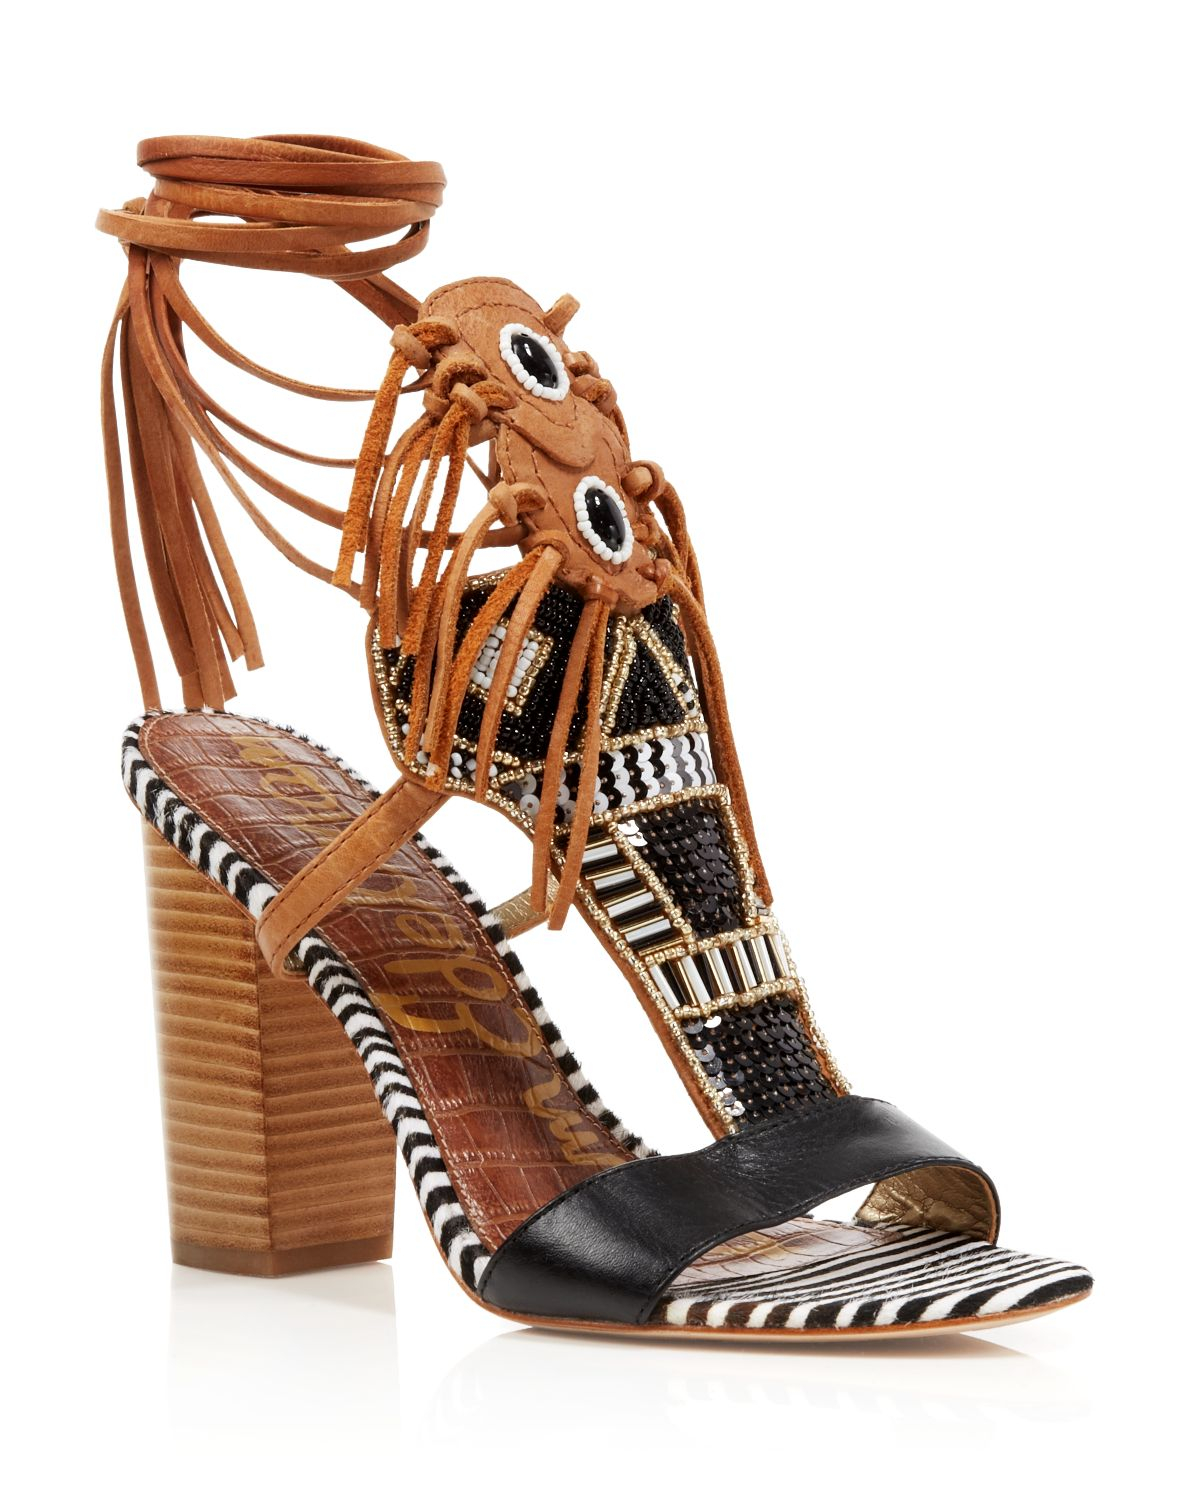 Black Shoes With Gold Block Heel